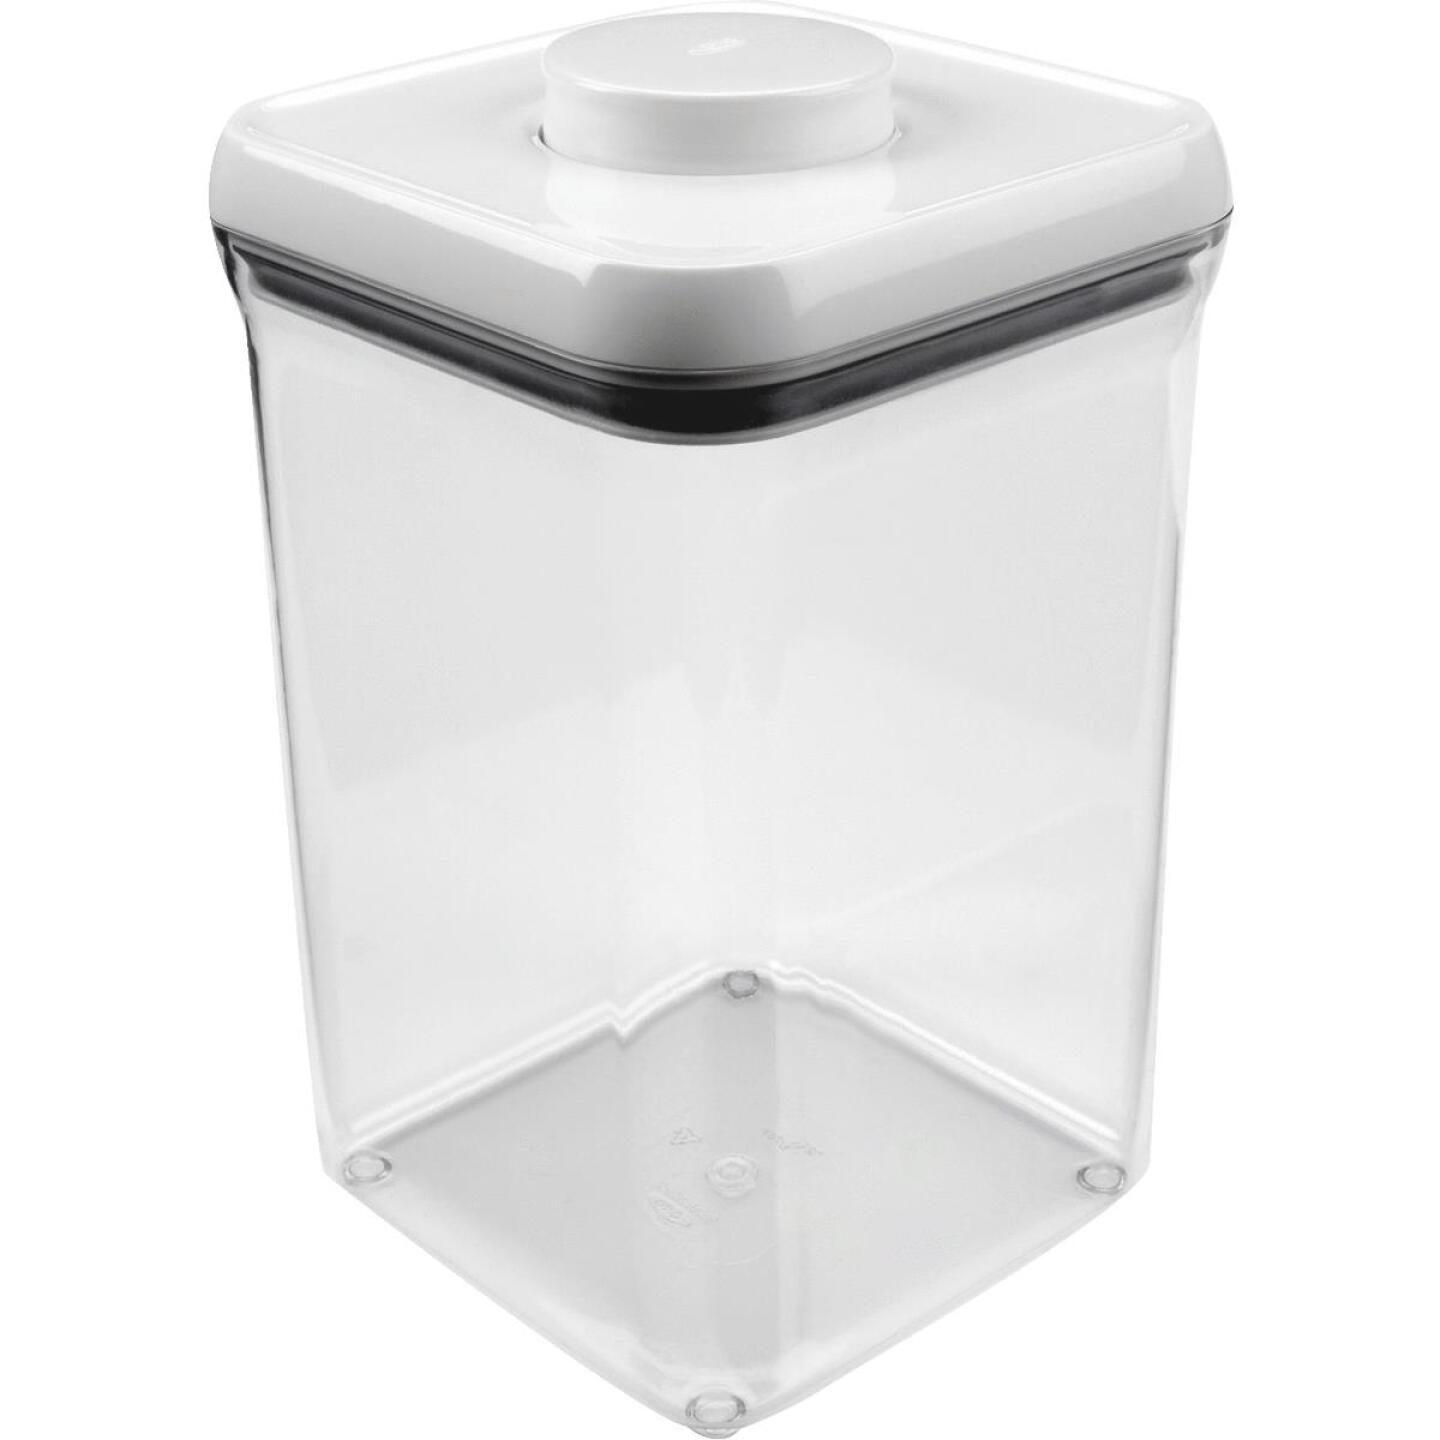 Oxo Good Grips 4 Qt. Clear Square Food Storage Container with Lid Image 1